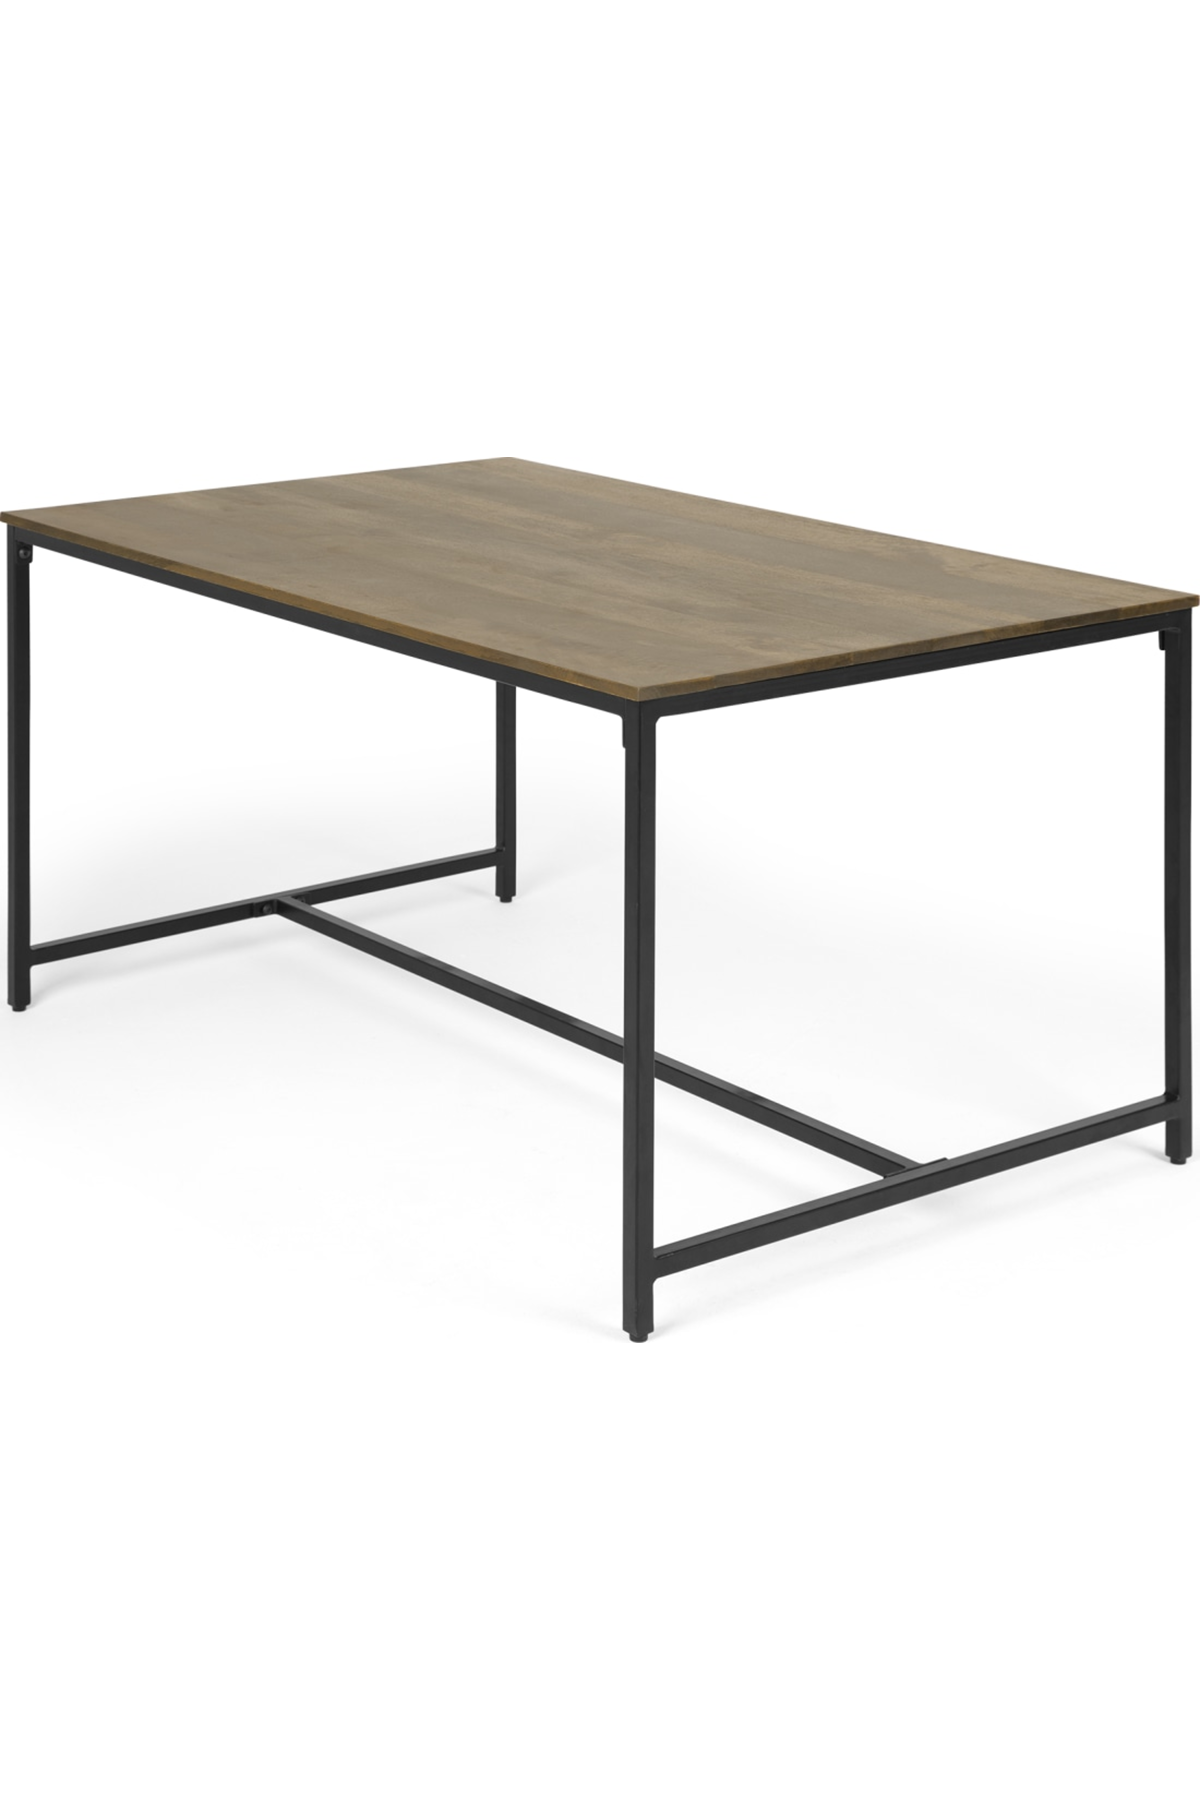 Lomond 6 Seat Compact Dining Table Mango Wood Dining Table